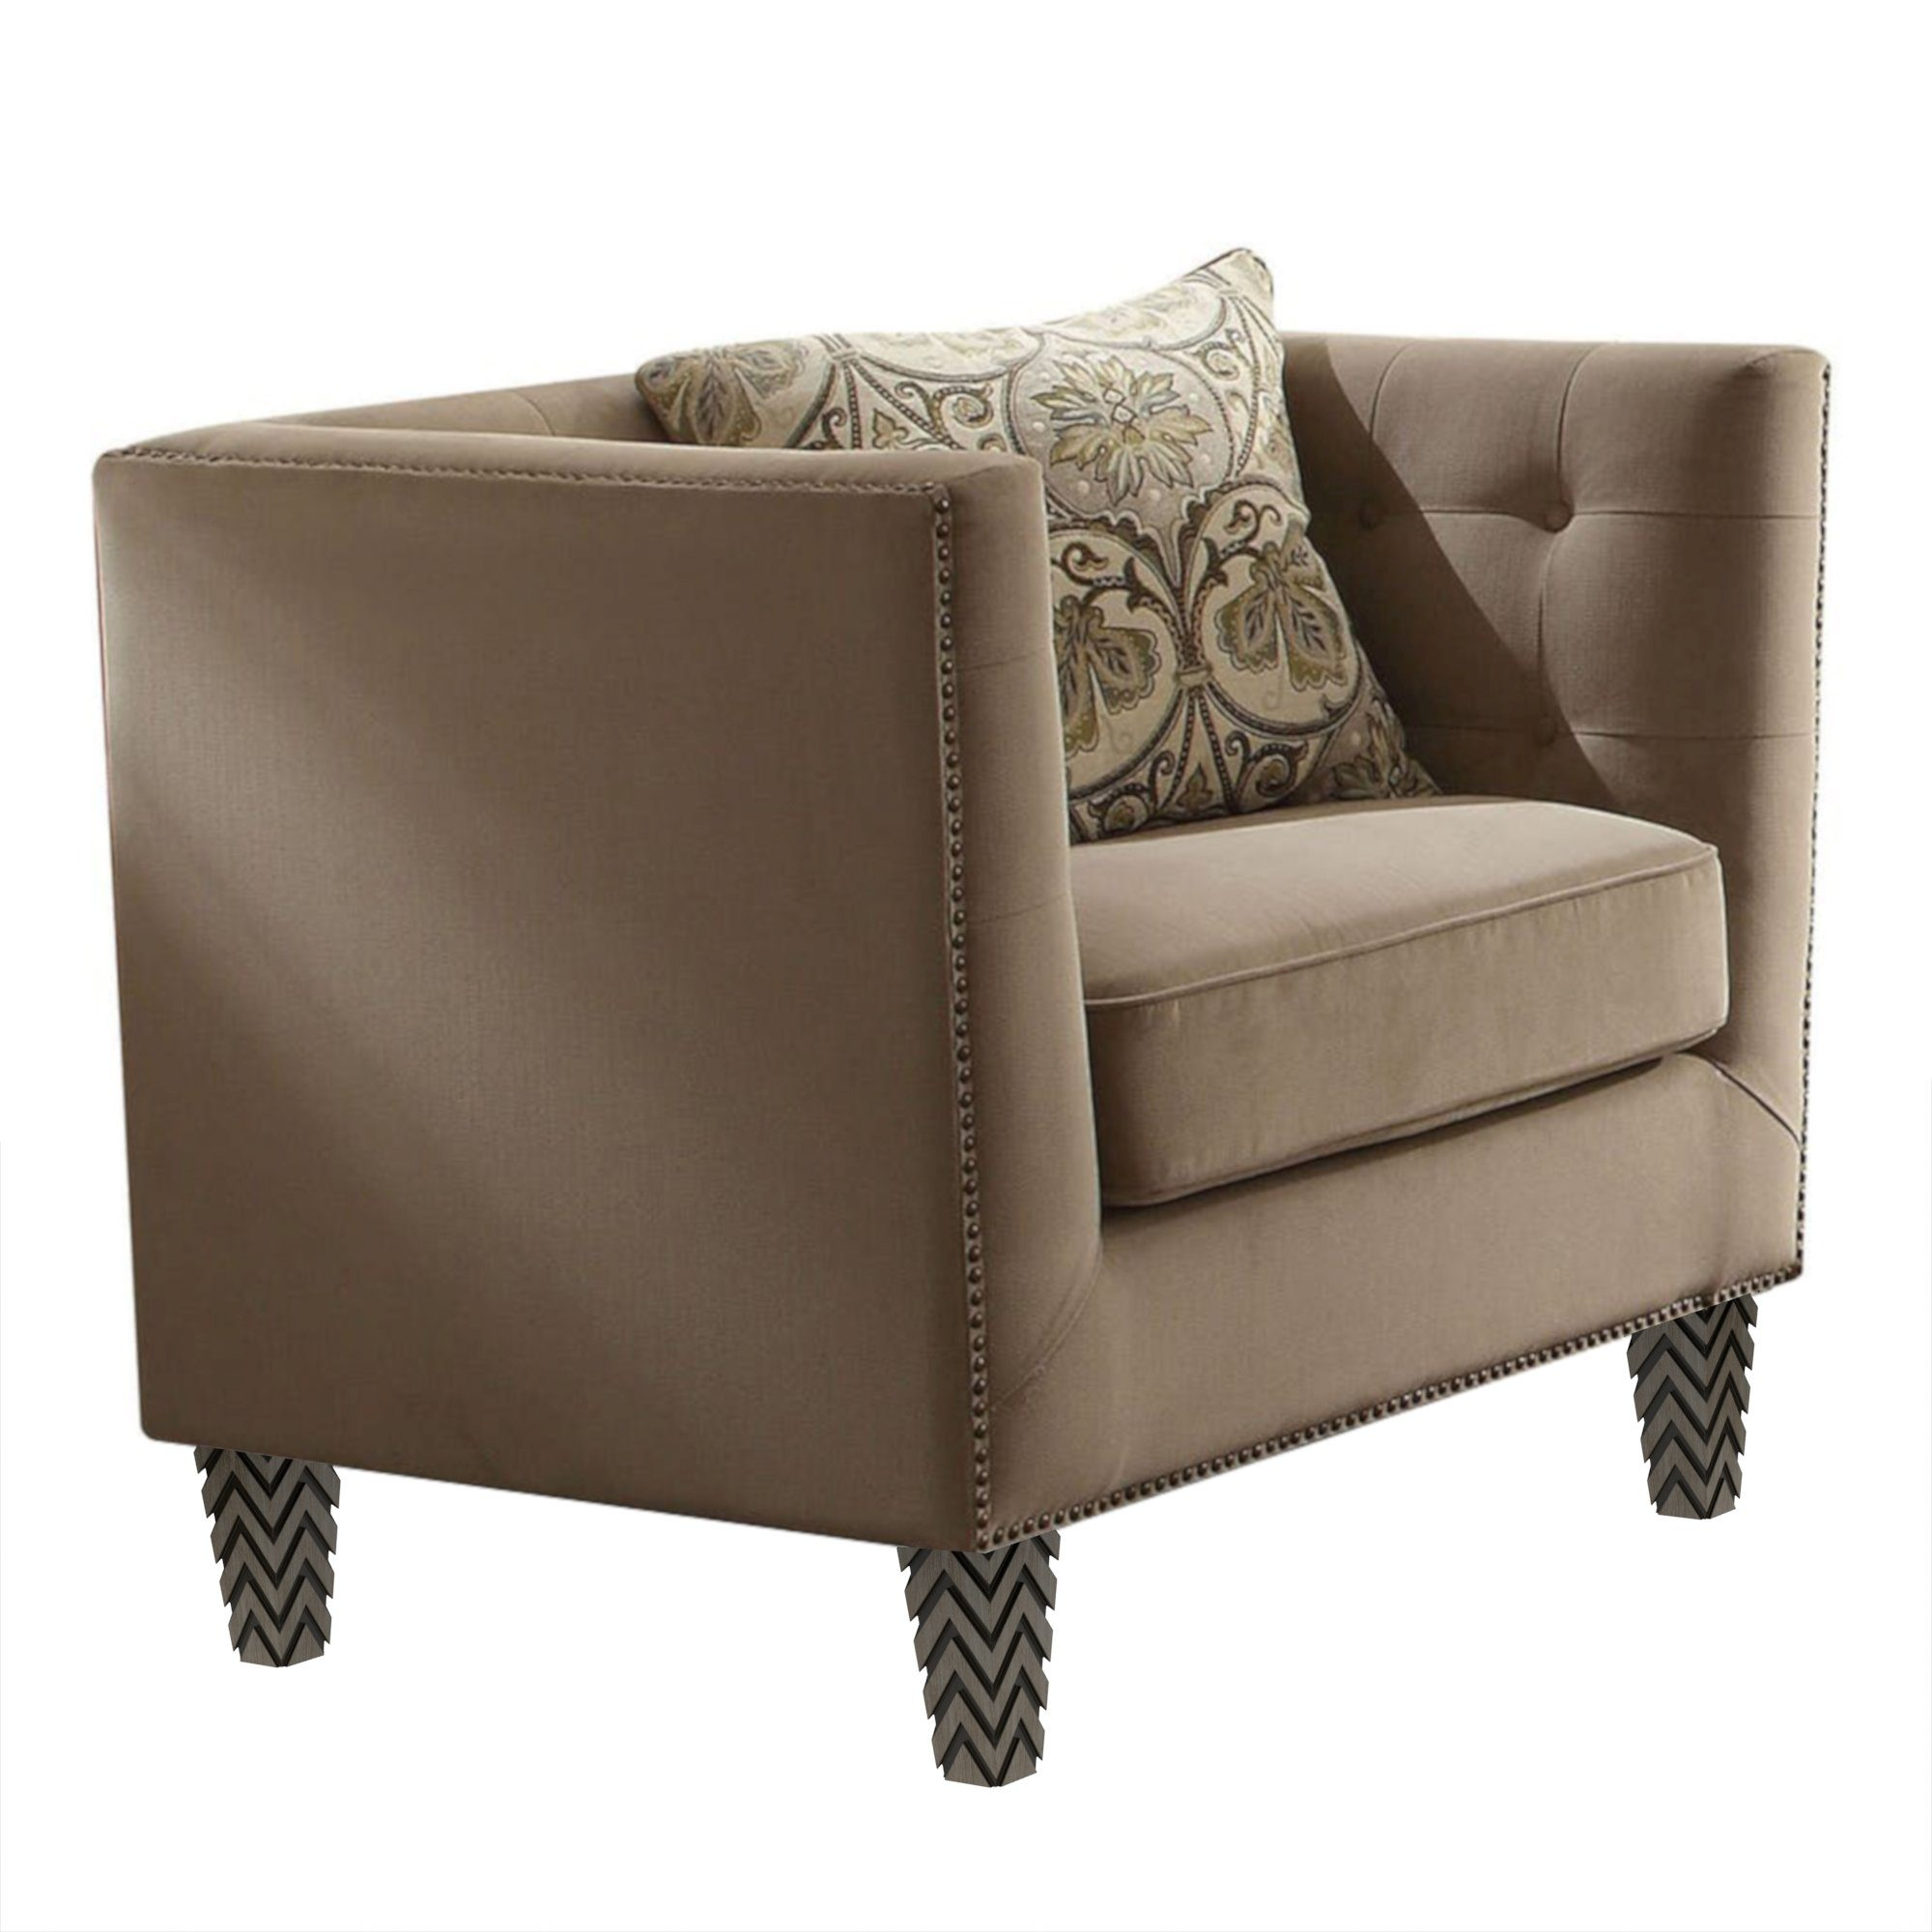 "Tufted Beige Juppa Chair with Nailheads (42"")"